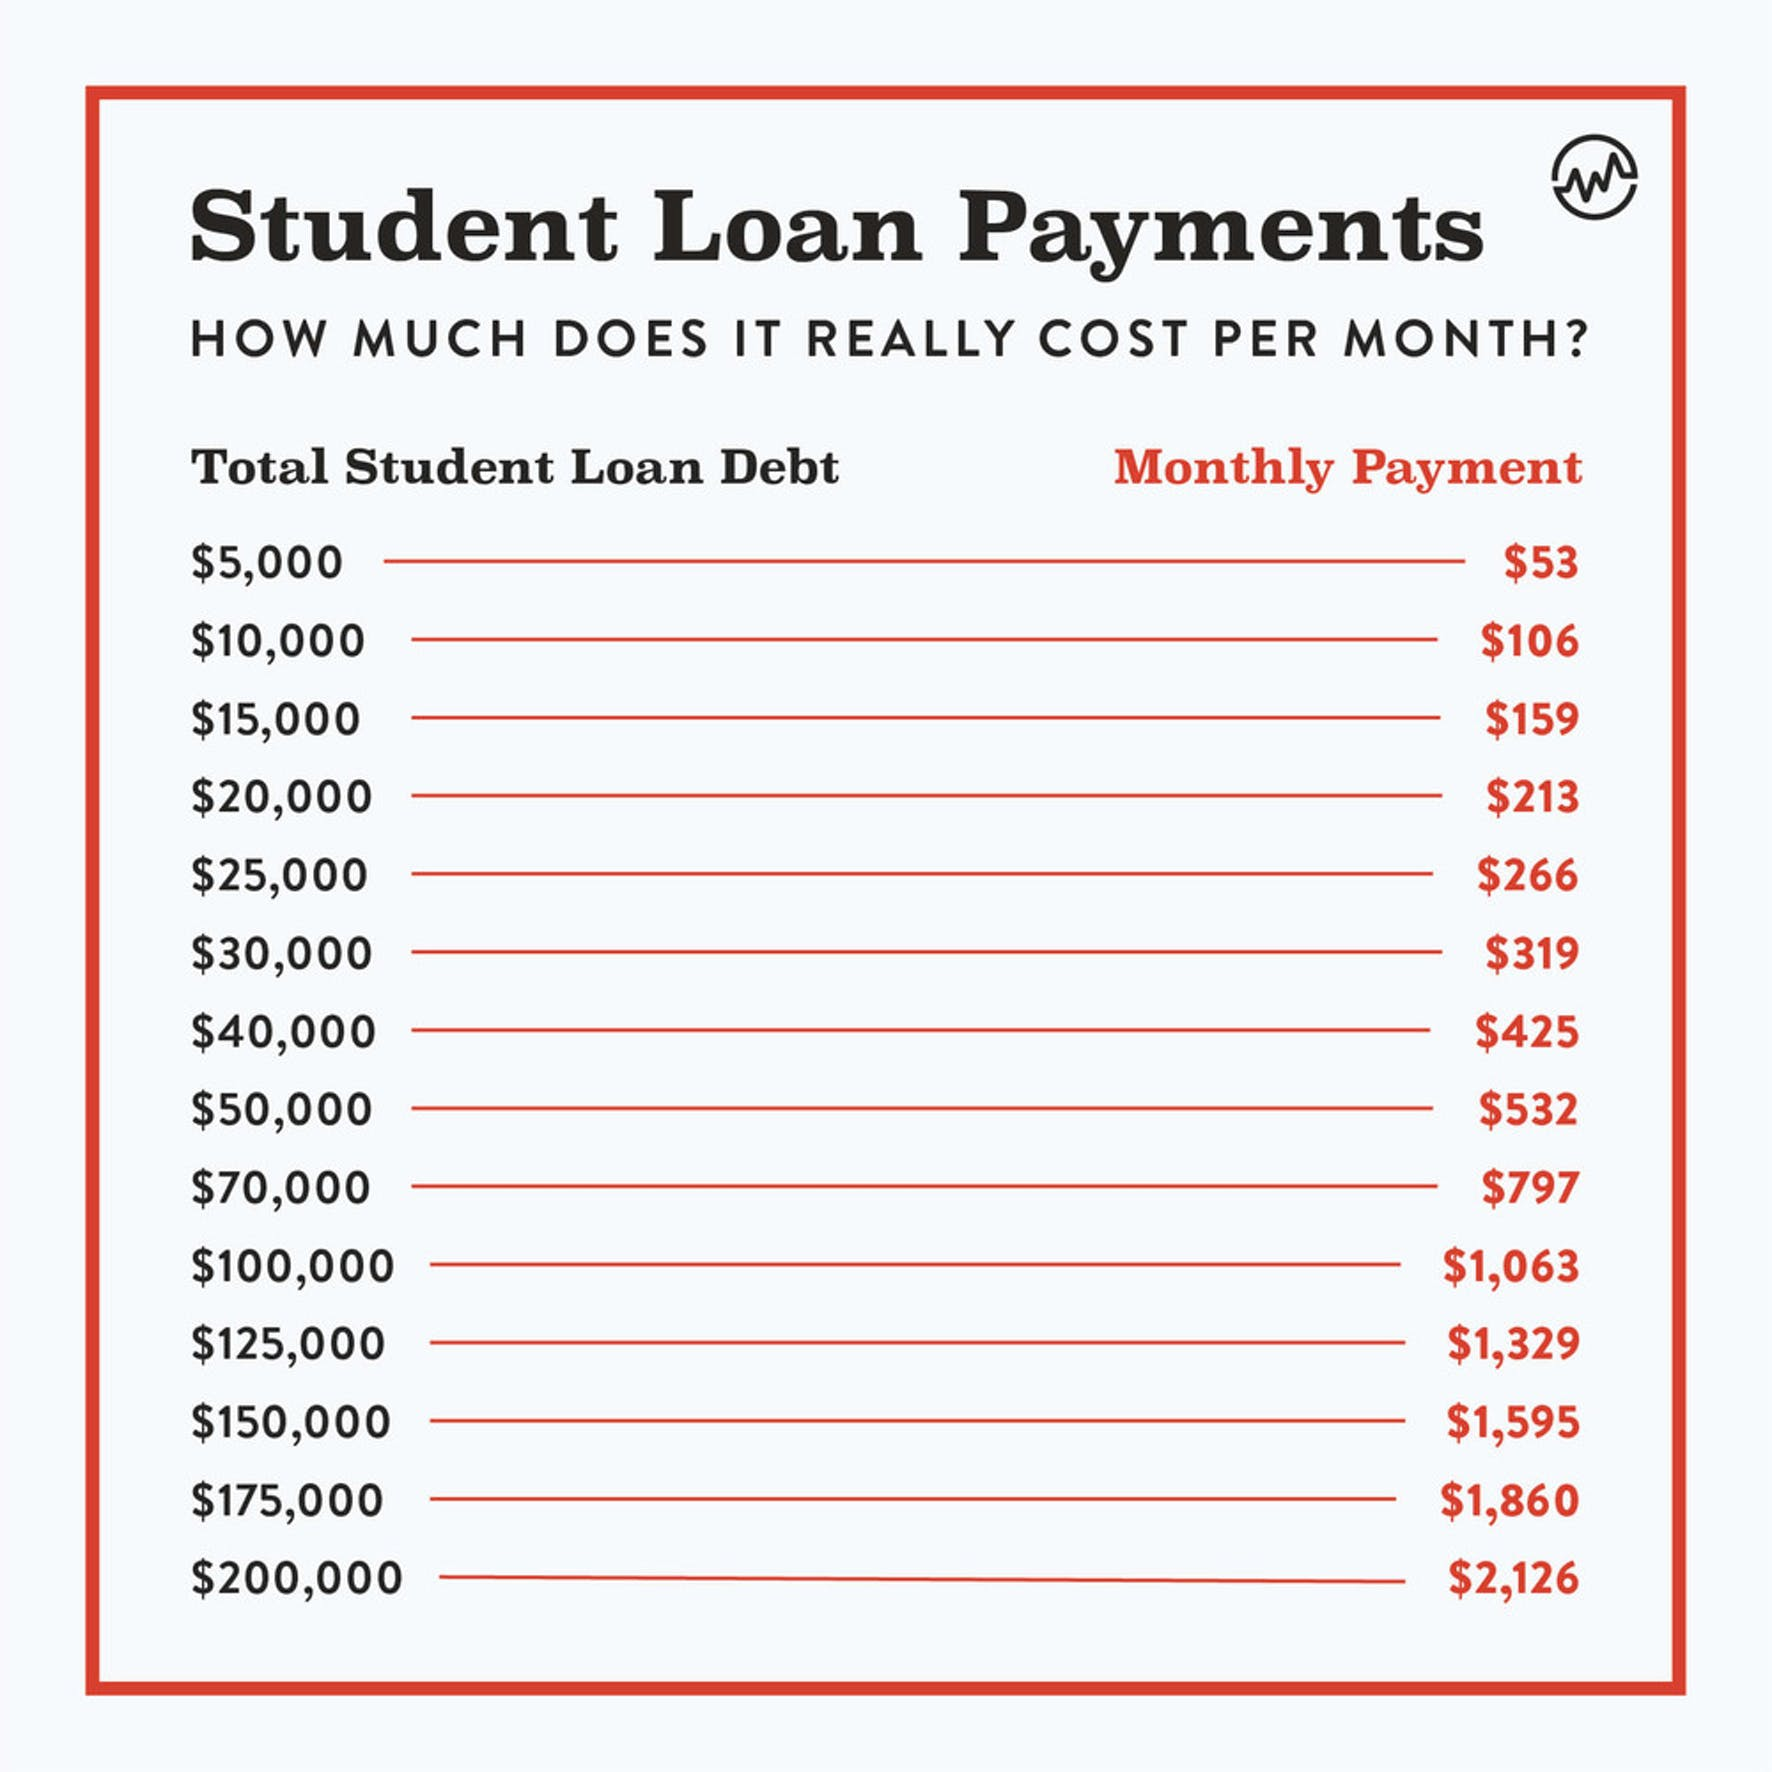 Student loan payments: how much does it really cost per month infographic